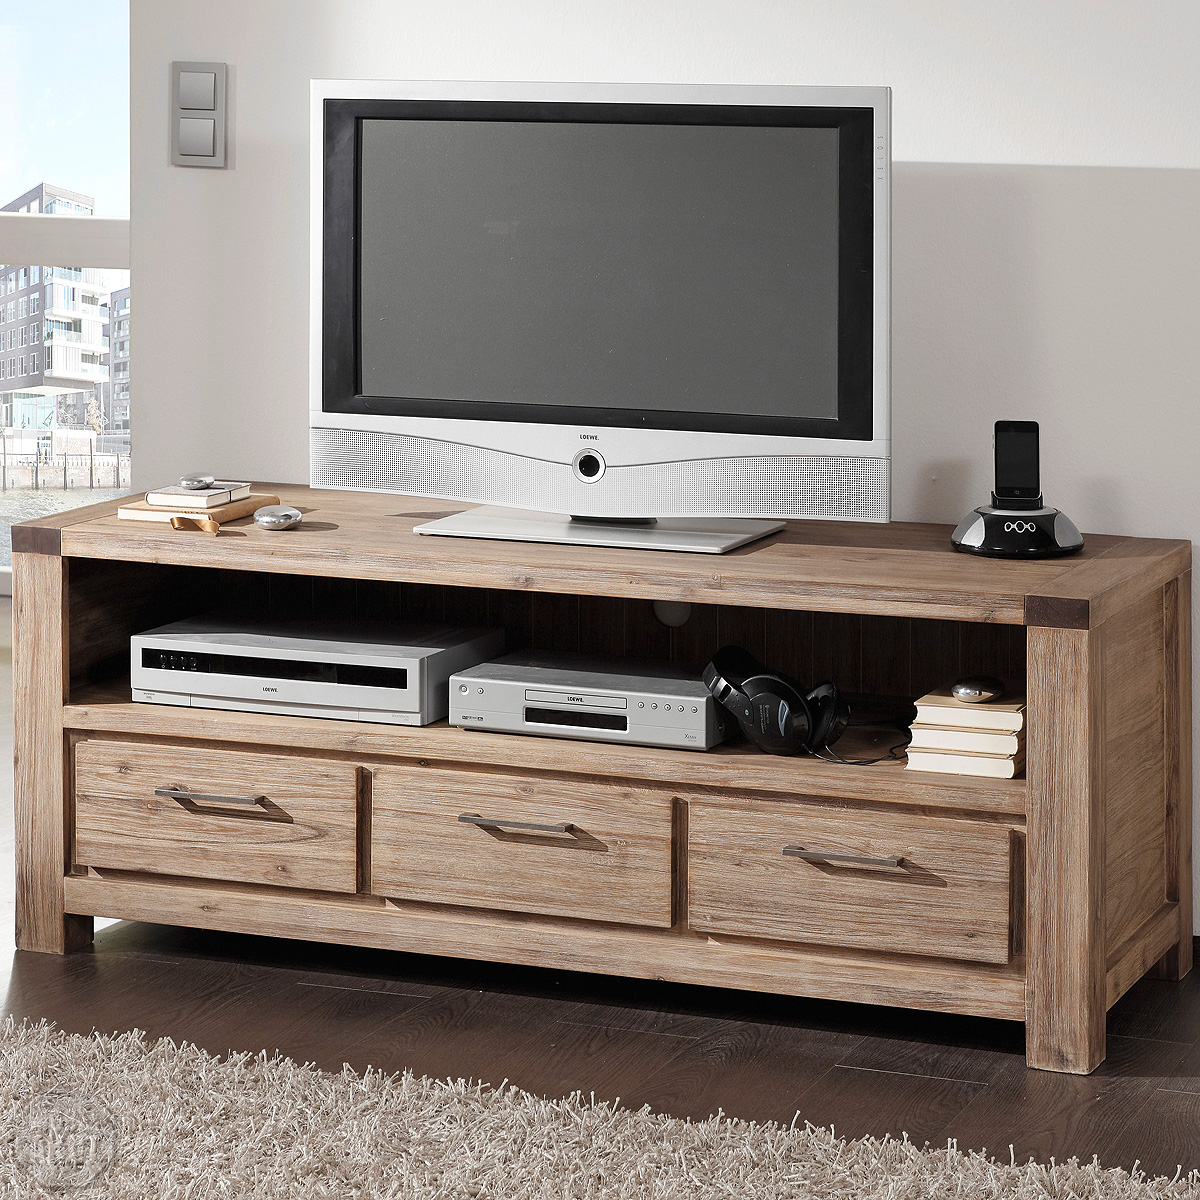 longboard 9617 coast tv board von wolf m bel in massivholz akazie ebay. Black Bedroom Furniture Sets. Home Design Ideas